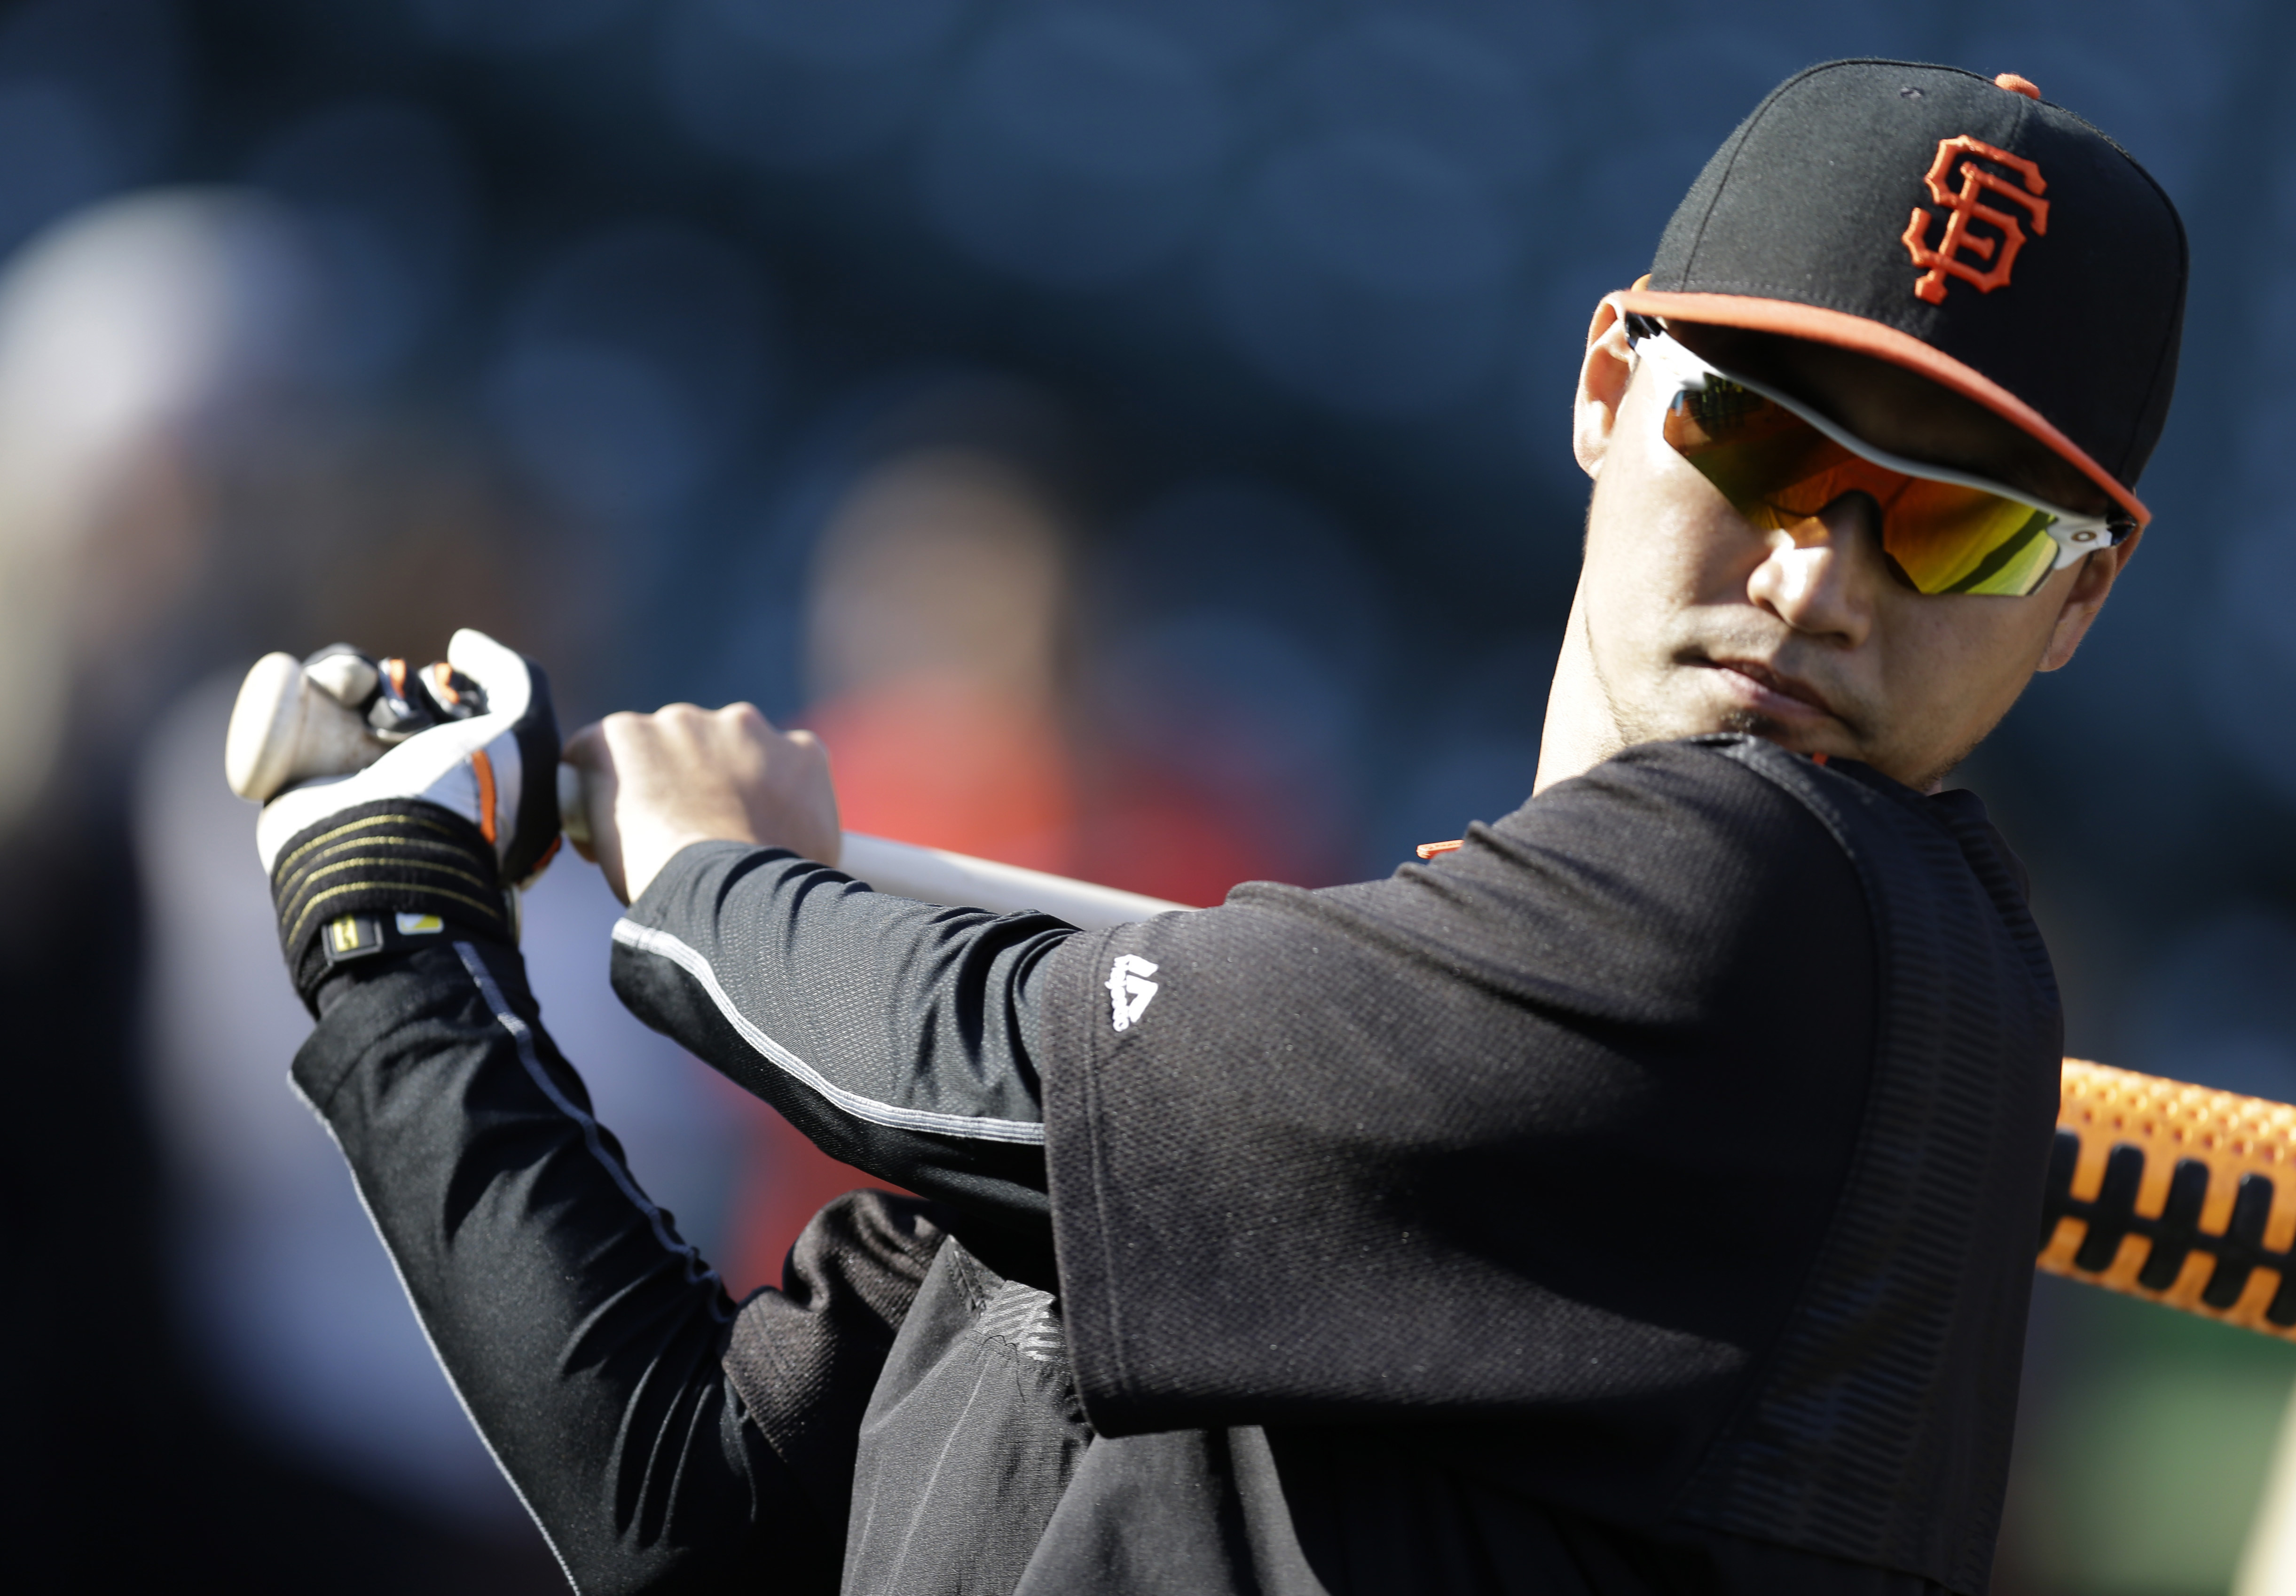 FILE - In this Wednesday, April 22, 2015 file photo, San Francisco Giants' Nori Aoki of Japan waits to bat during practice prior to a baseball game against the Los Angeles Dodgers in San Francisco. The Mariners kept up their offseason makeover on Thursday